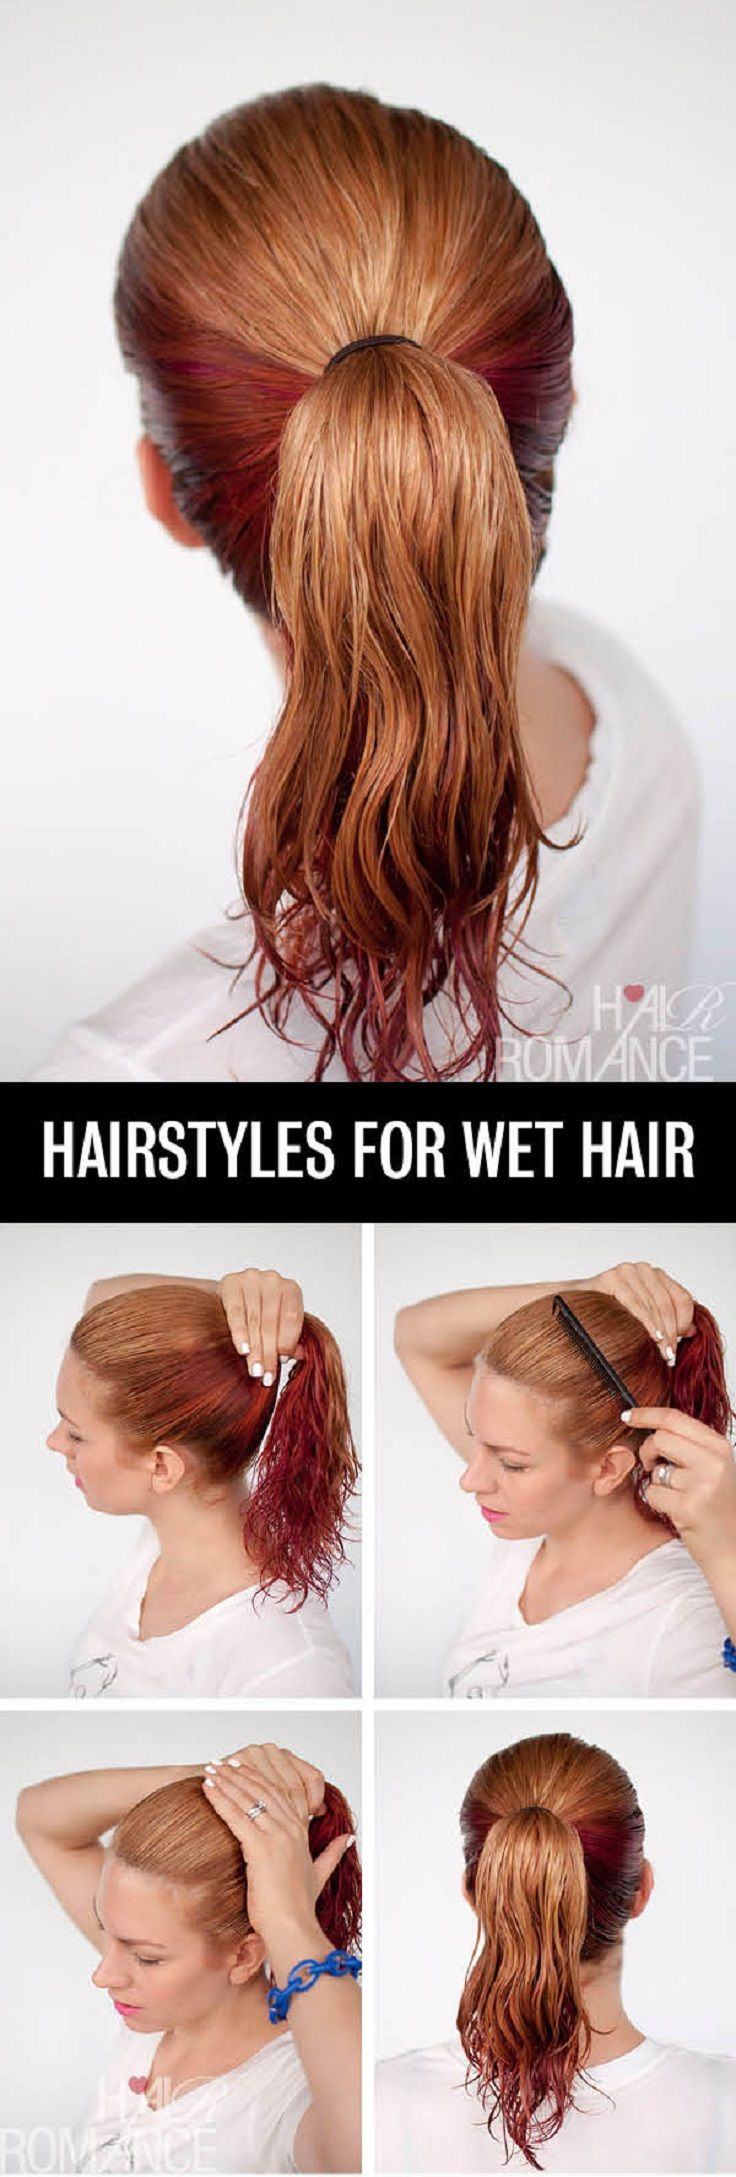 Stupendous 1000 Images About Hairstyles For Wet Hair On Pinterest Chignons Hairstyles For Men Maxibearus